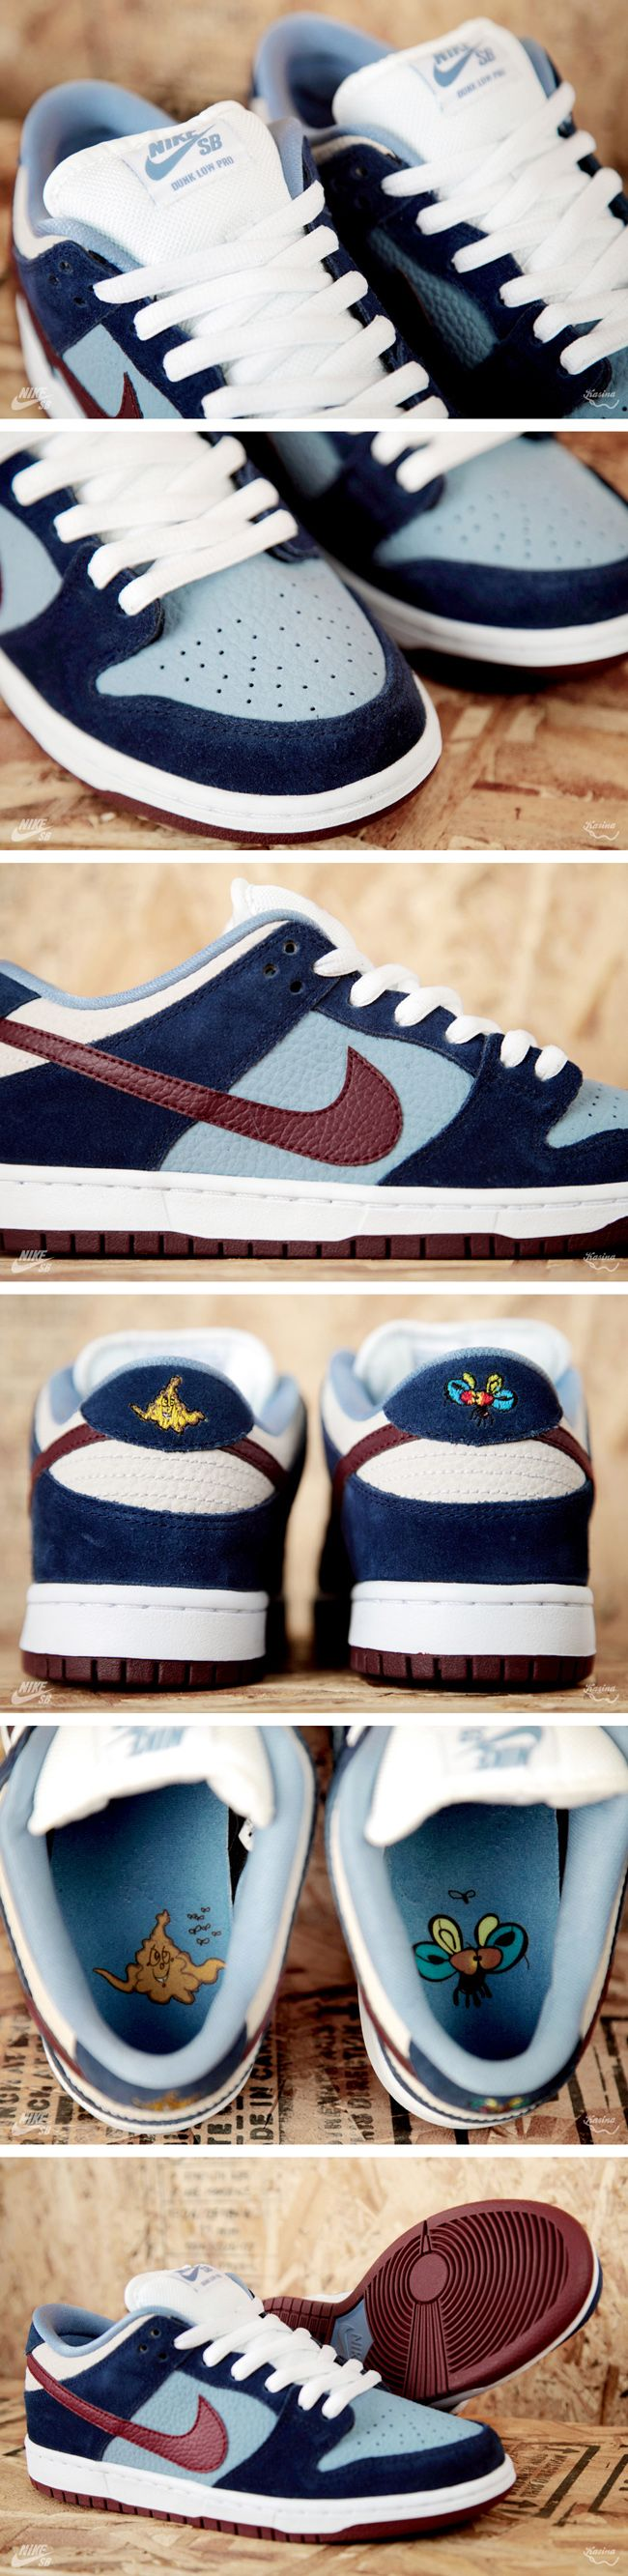 "Detailed Photos: FTC x Nike SB Dunk Low Pro ""Finally"""